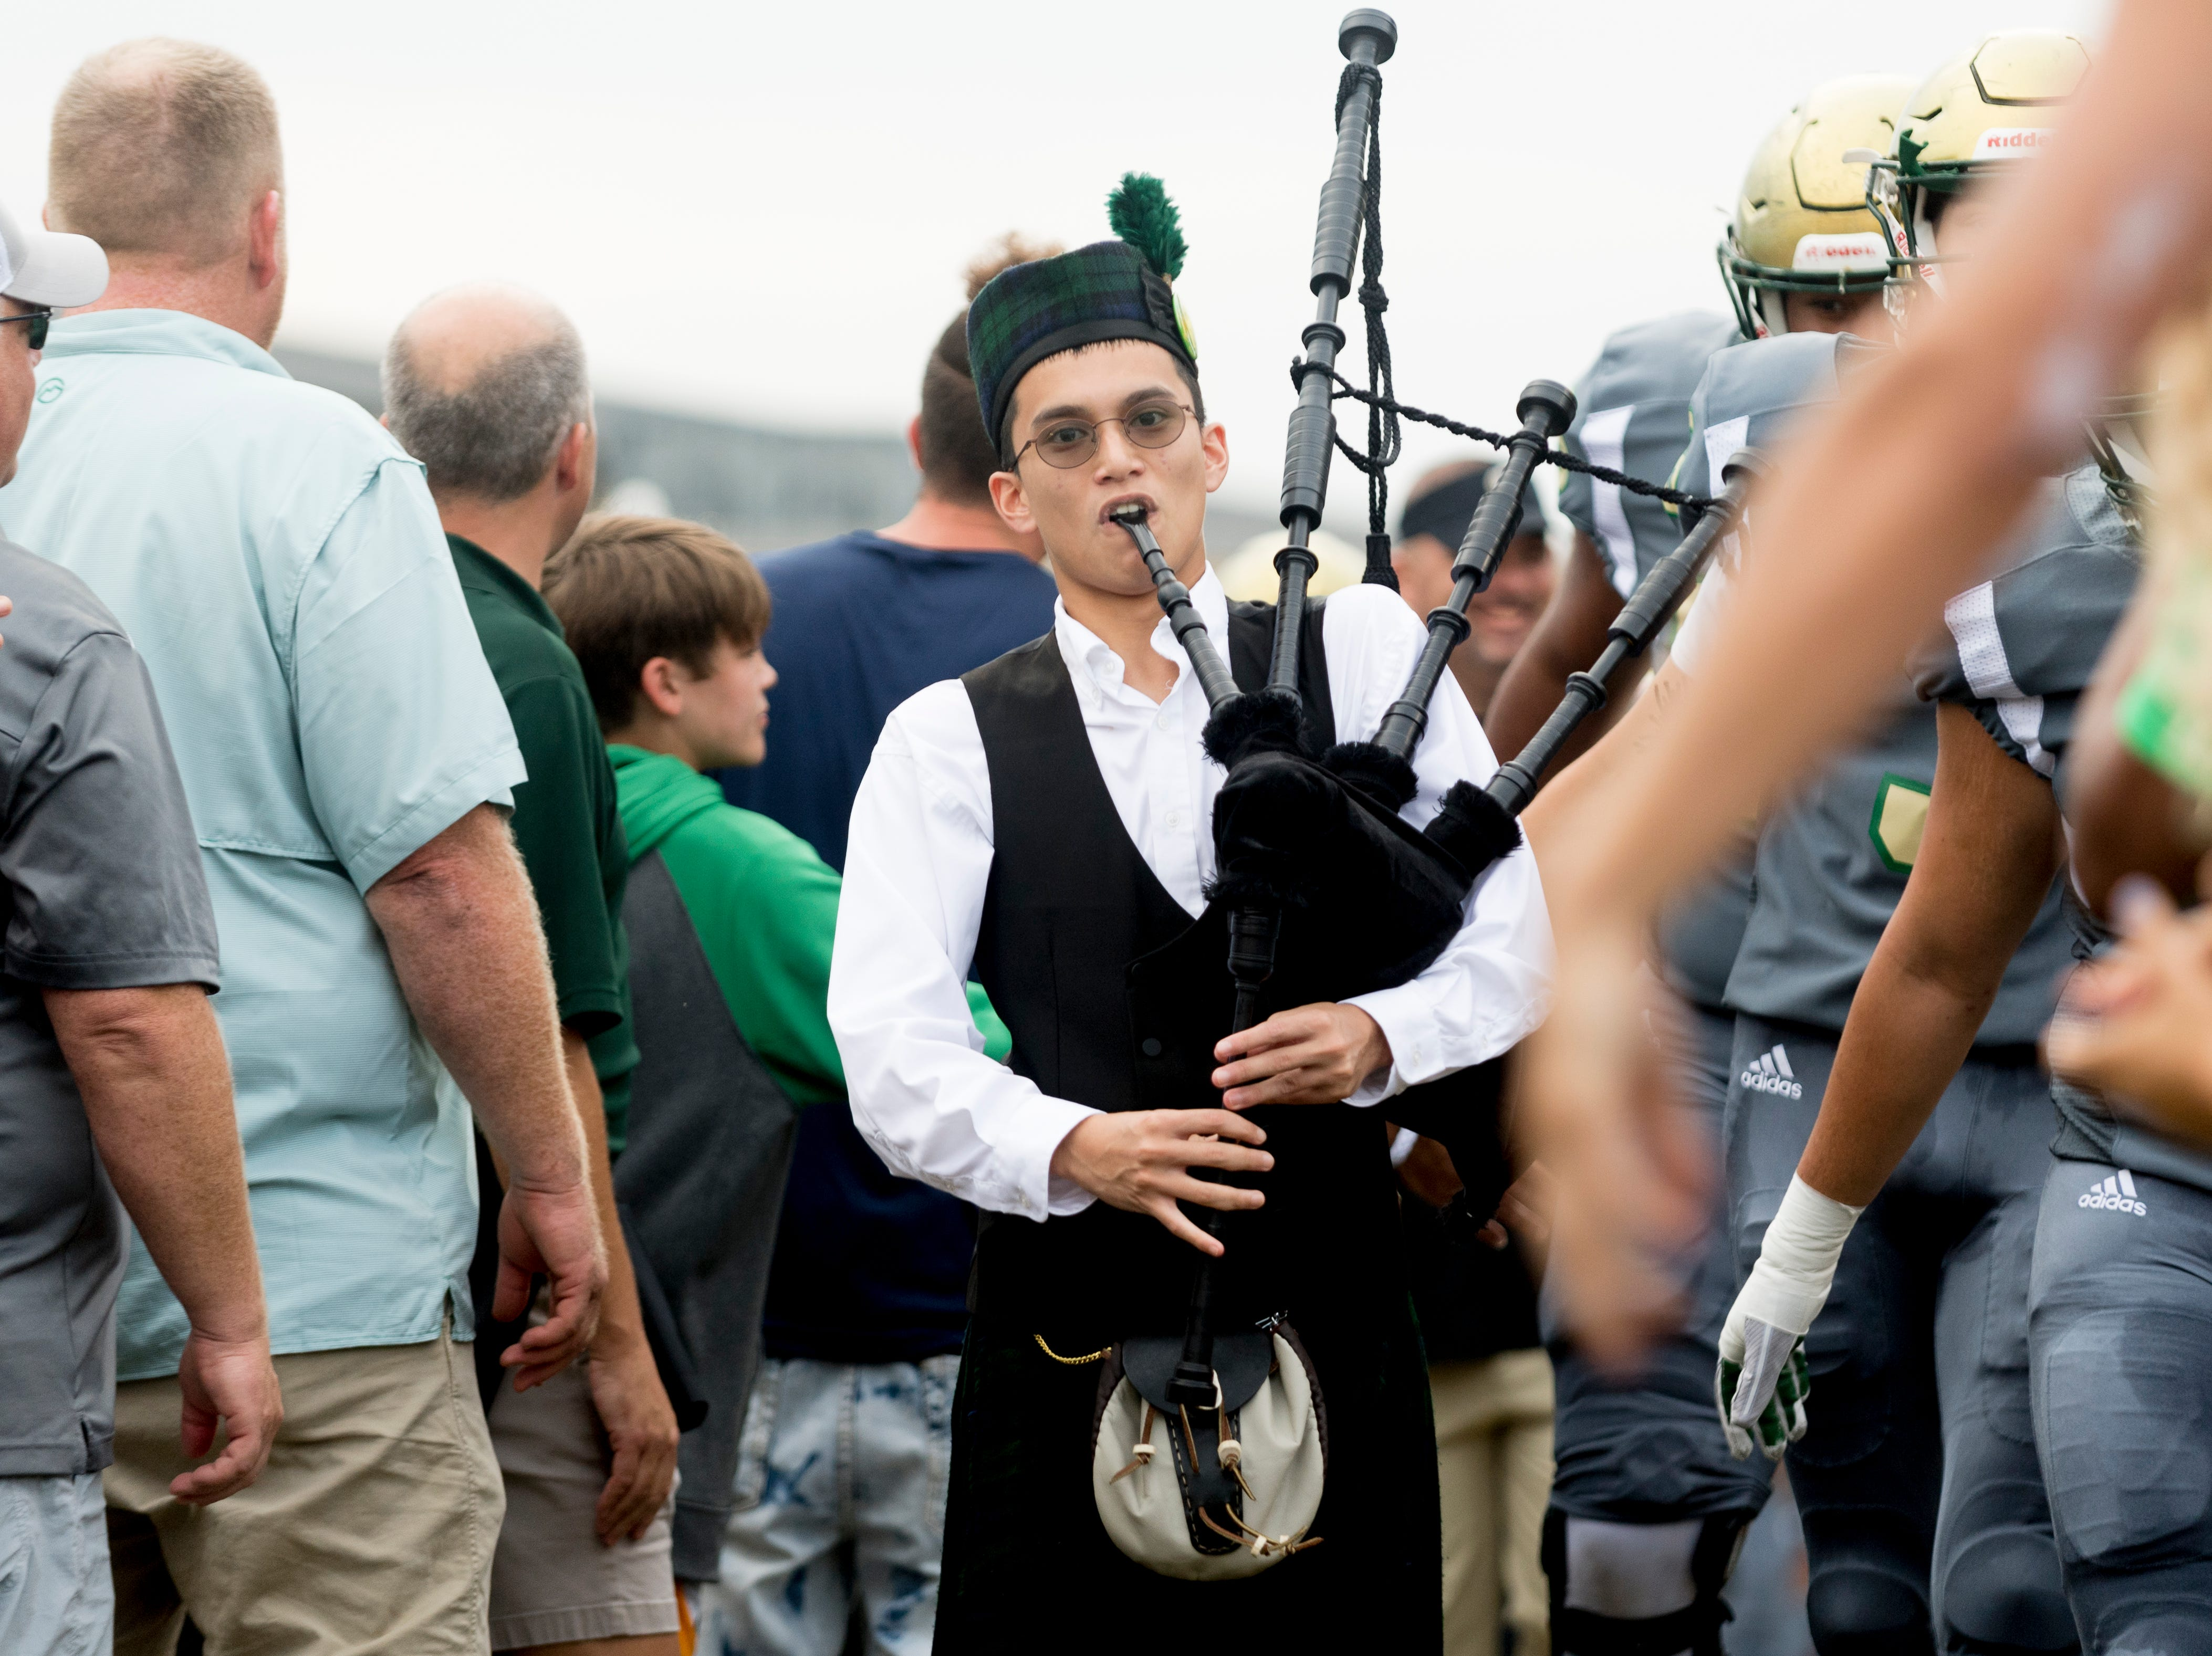 A bagpipe player escorts the team from the locker room during a football game between Maryville and Catholic at Catholic High School in Knoxville, Tennessee on Friday, August 17, 2018.